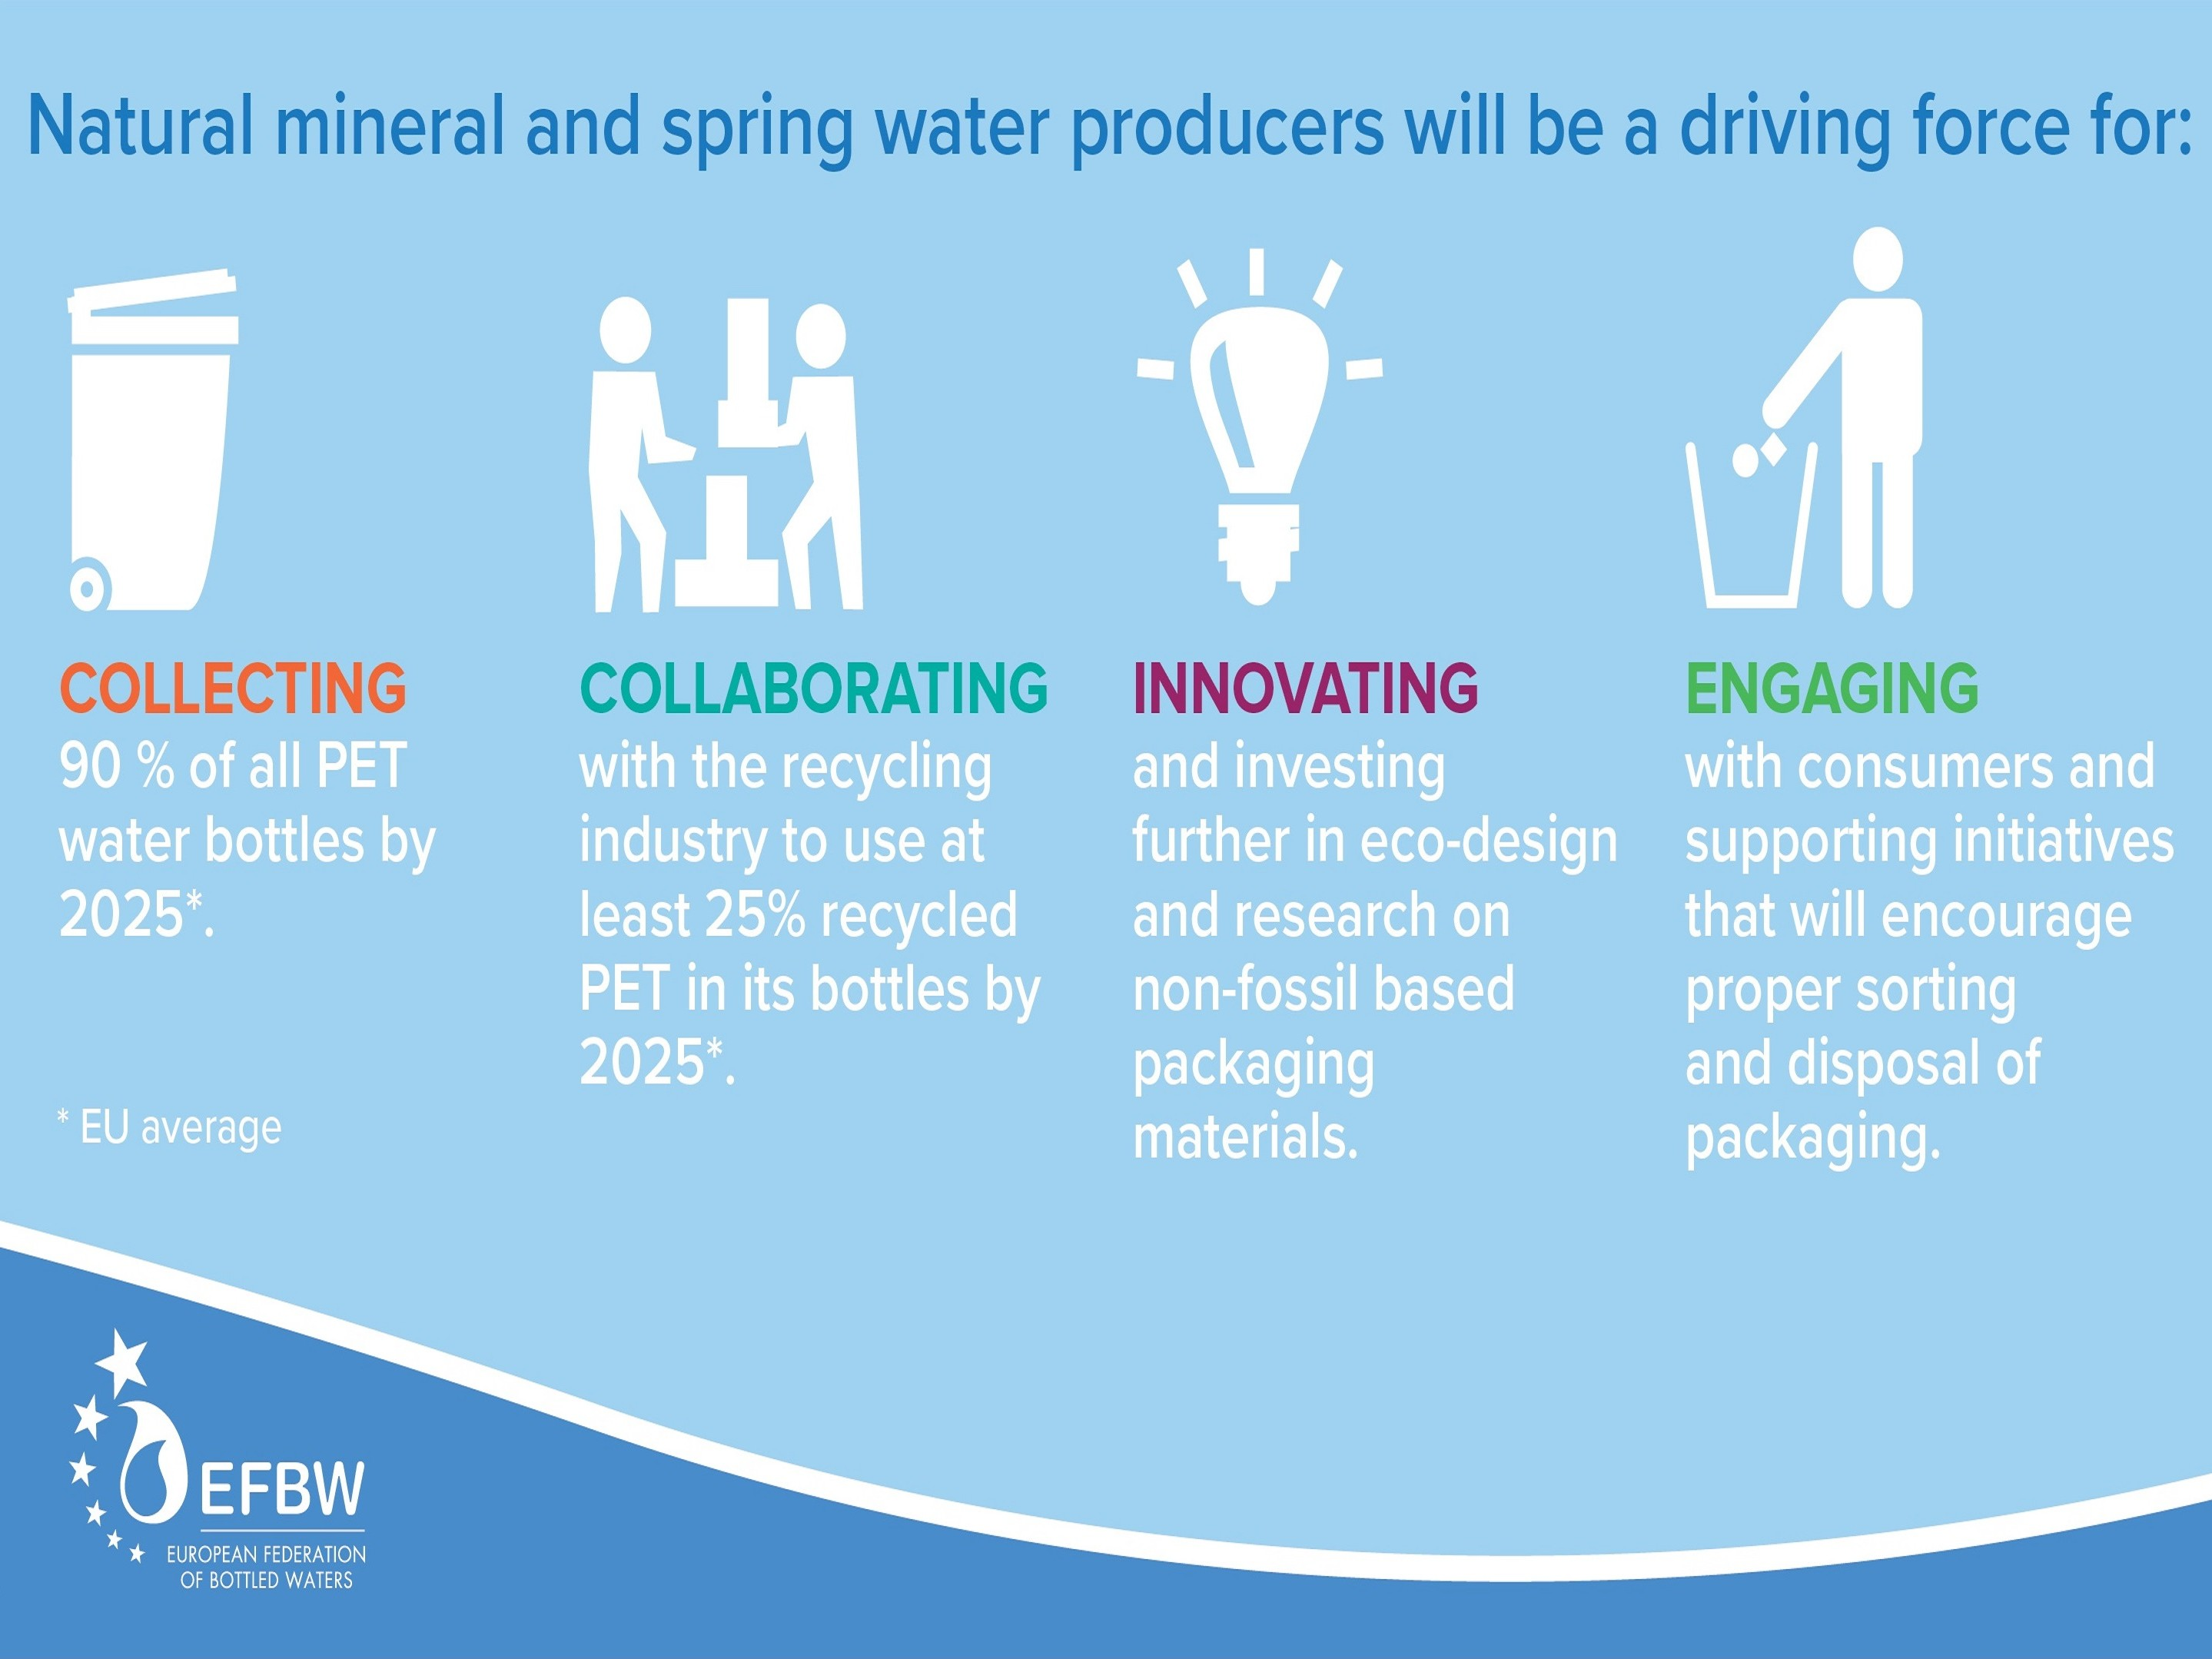 European bottled water producers make major pledges towards circular economy by 2025